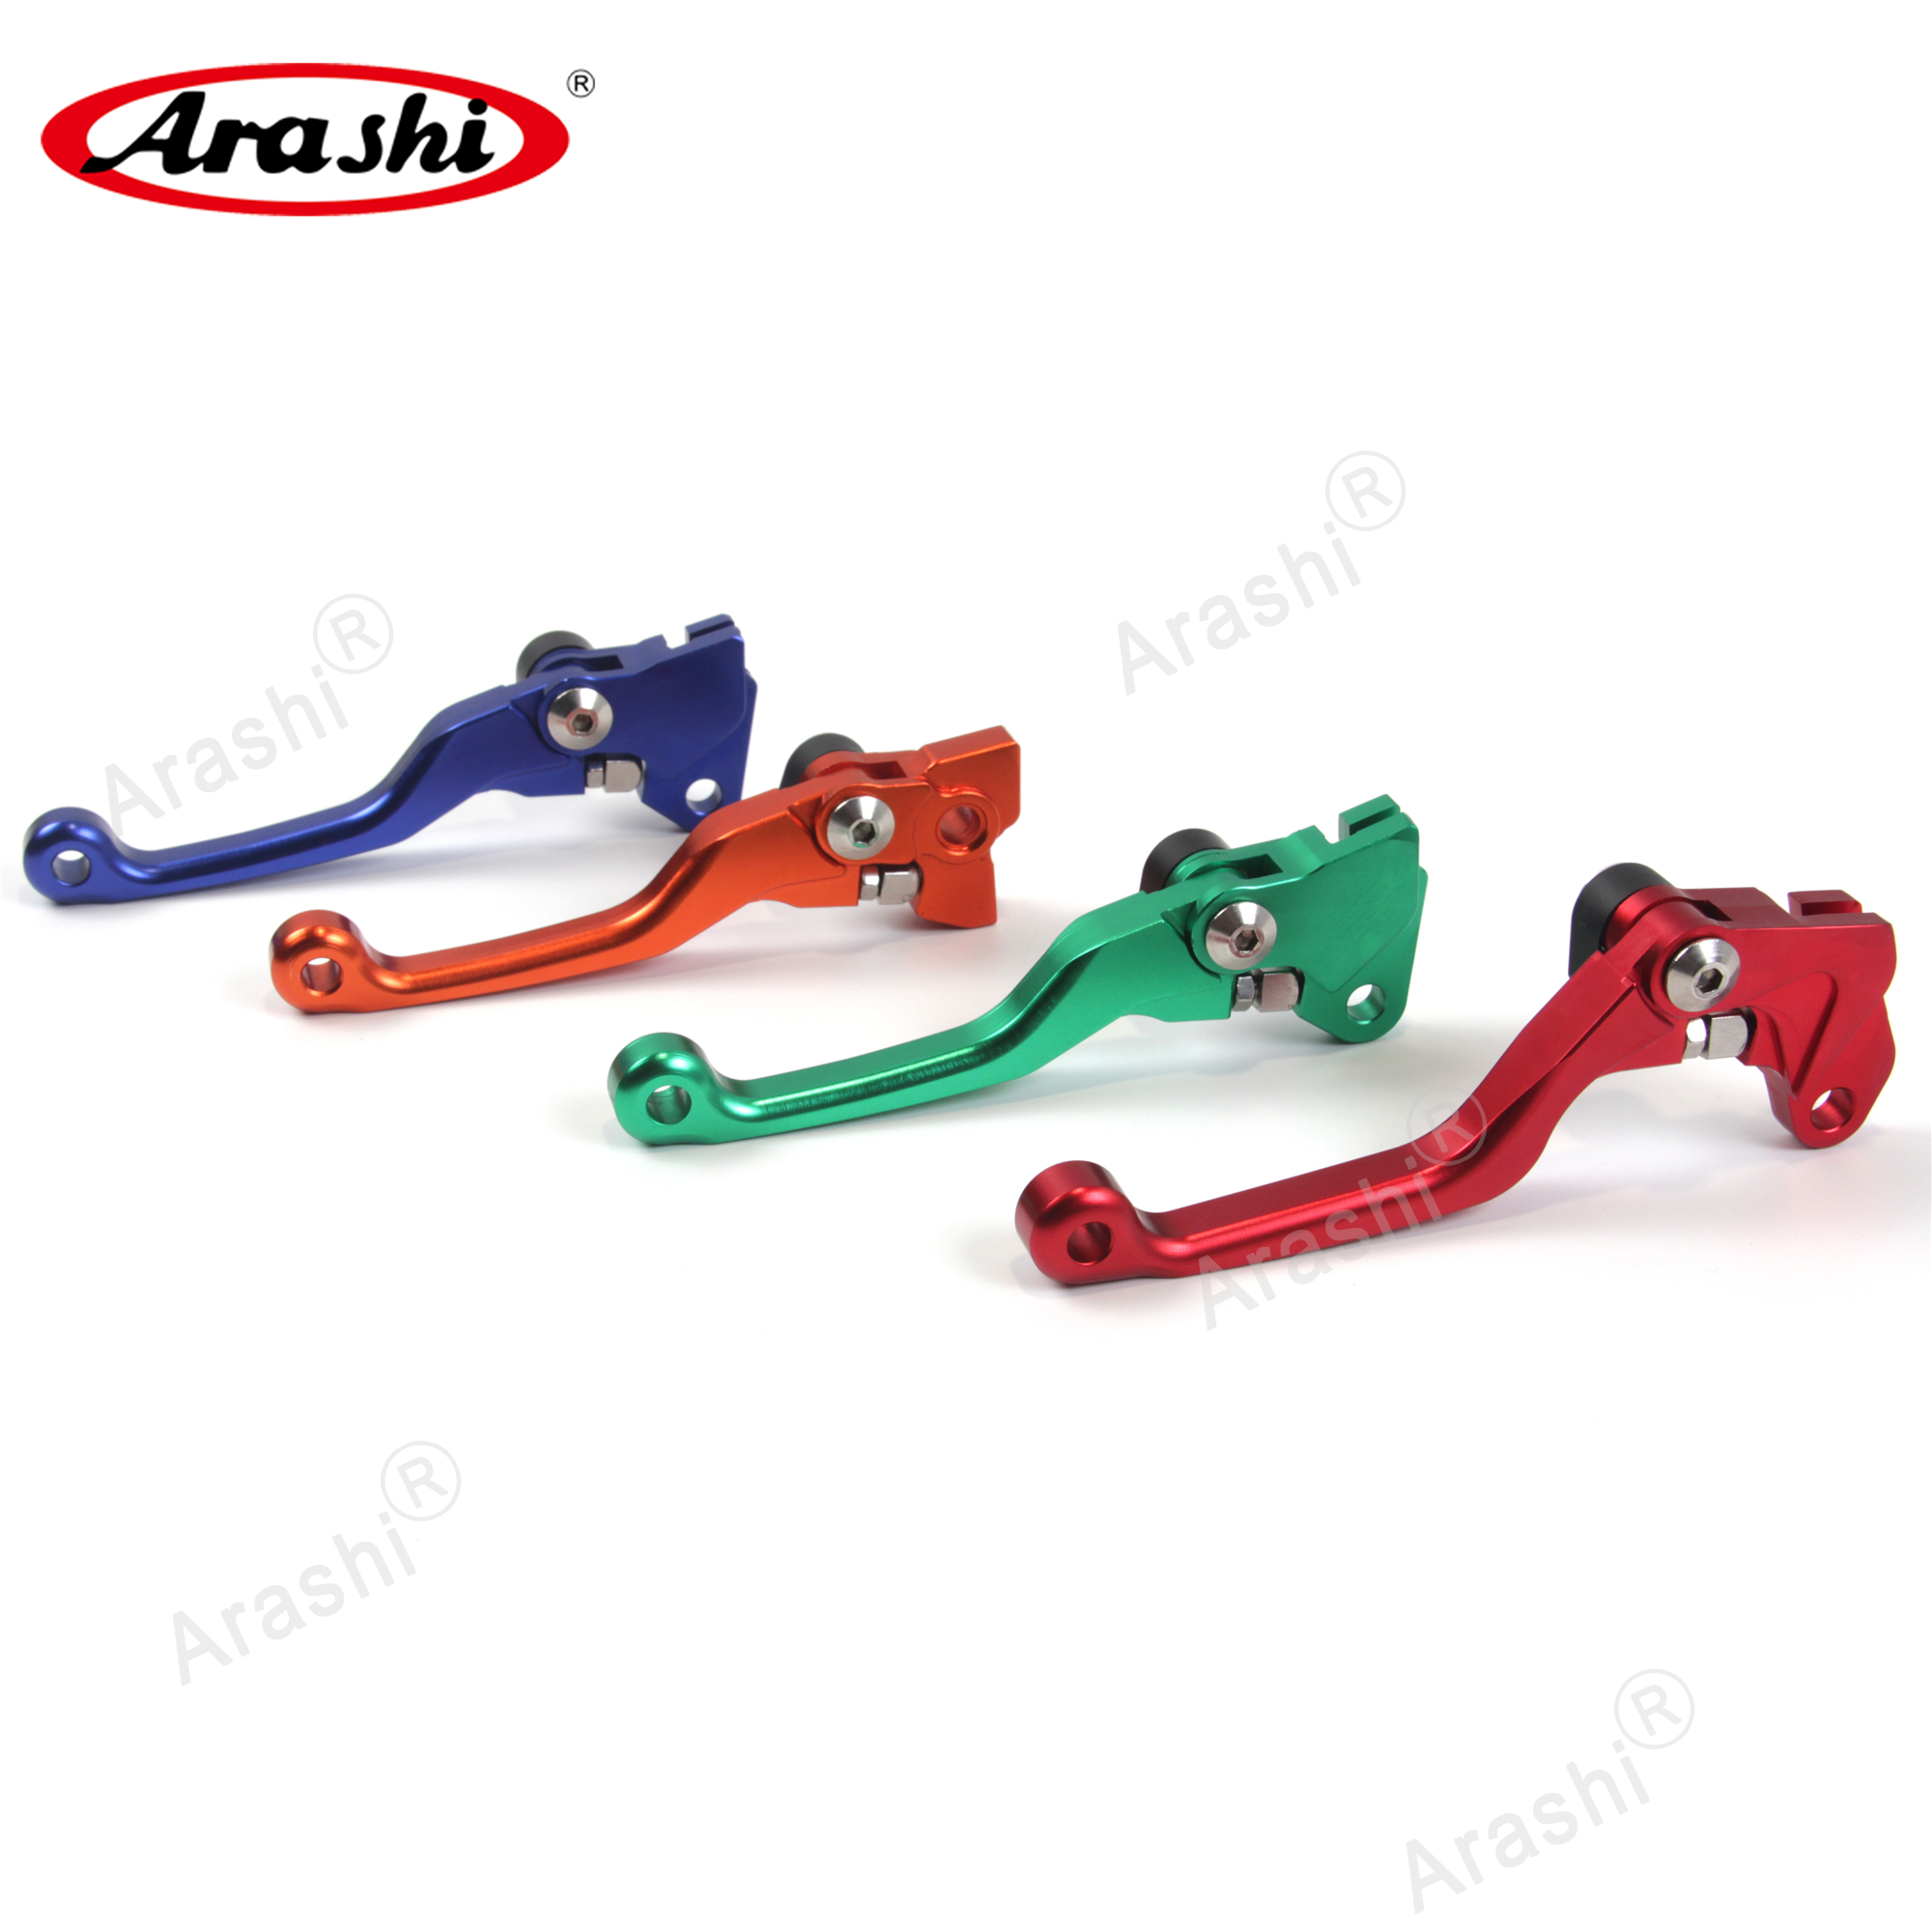 Arashi 1 Pair Dirt Bike CNC Brake Clutch Levers For HONDA CRF250 CRF450R 07-17 Motorcycle Brake Lever <font><b>CRF</b></font> 250 <font><b>450R</b></font> 2015 <font><b>2016</b></font> image